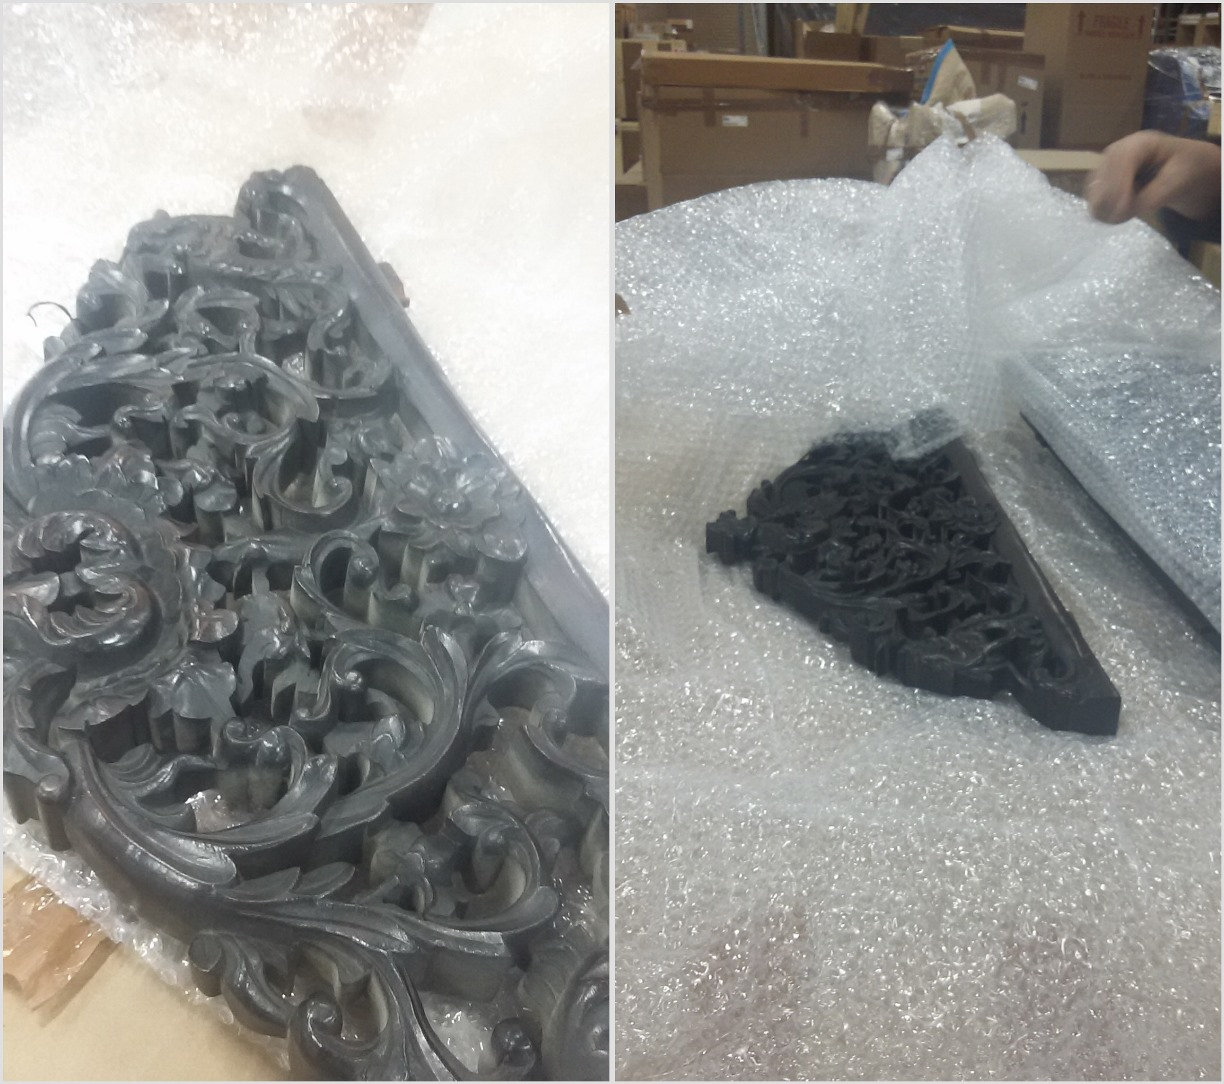 How to ship antique Chinese screen